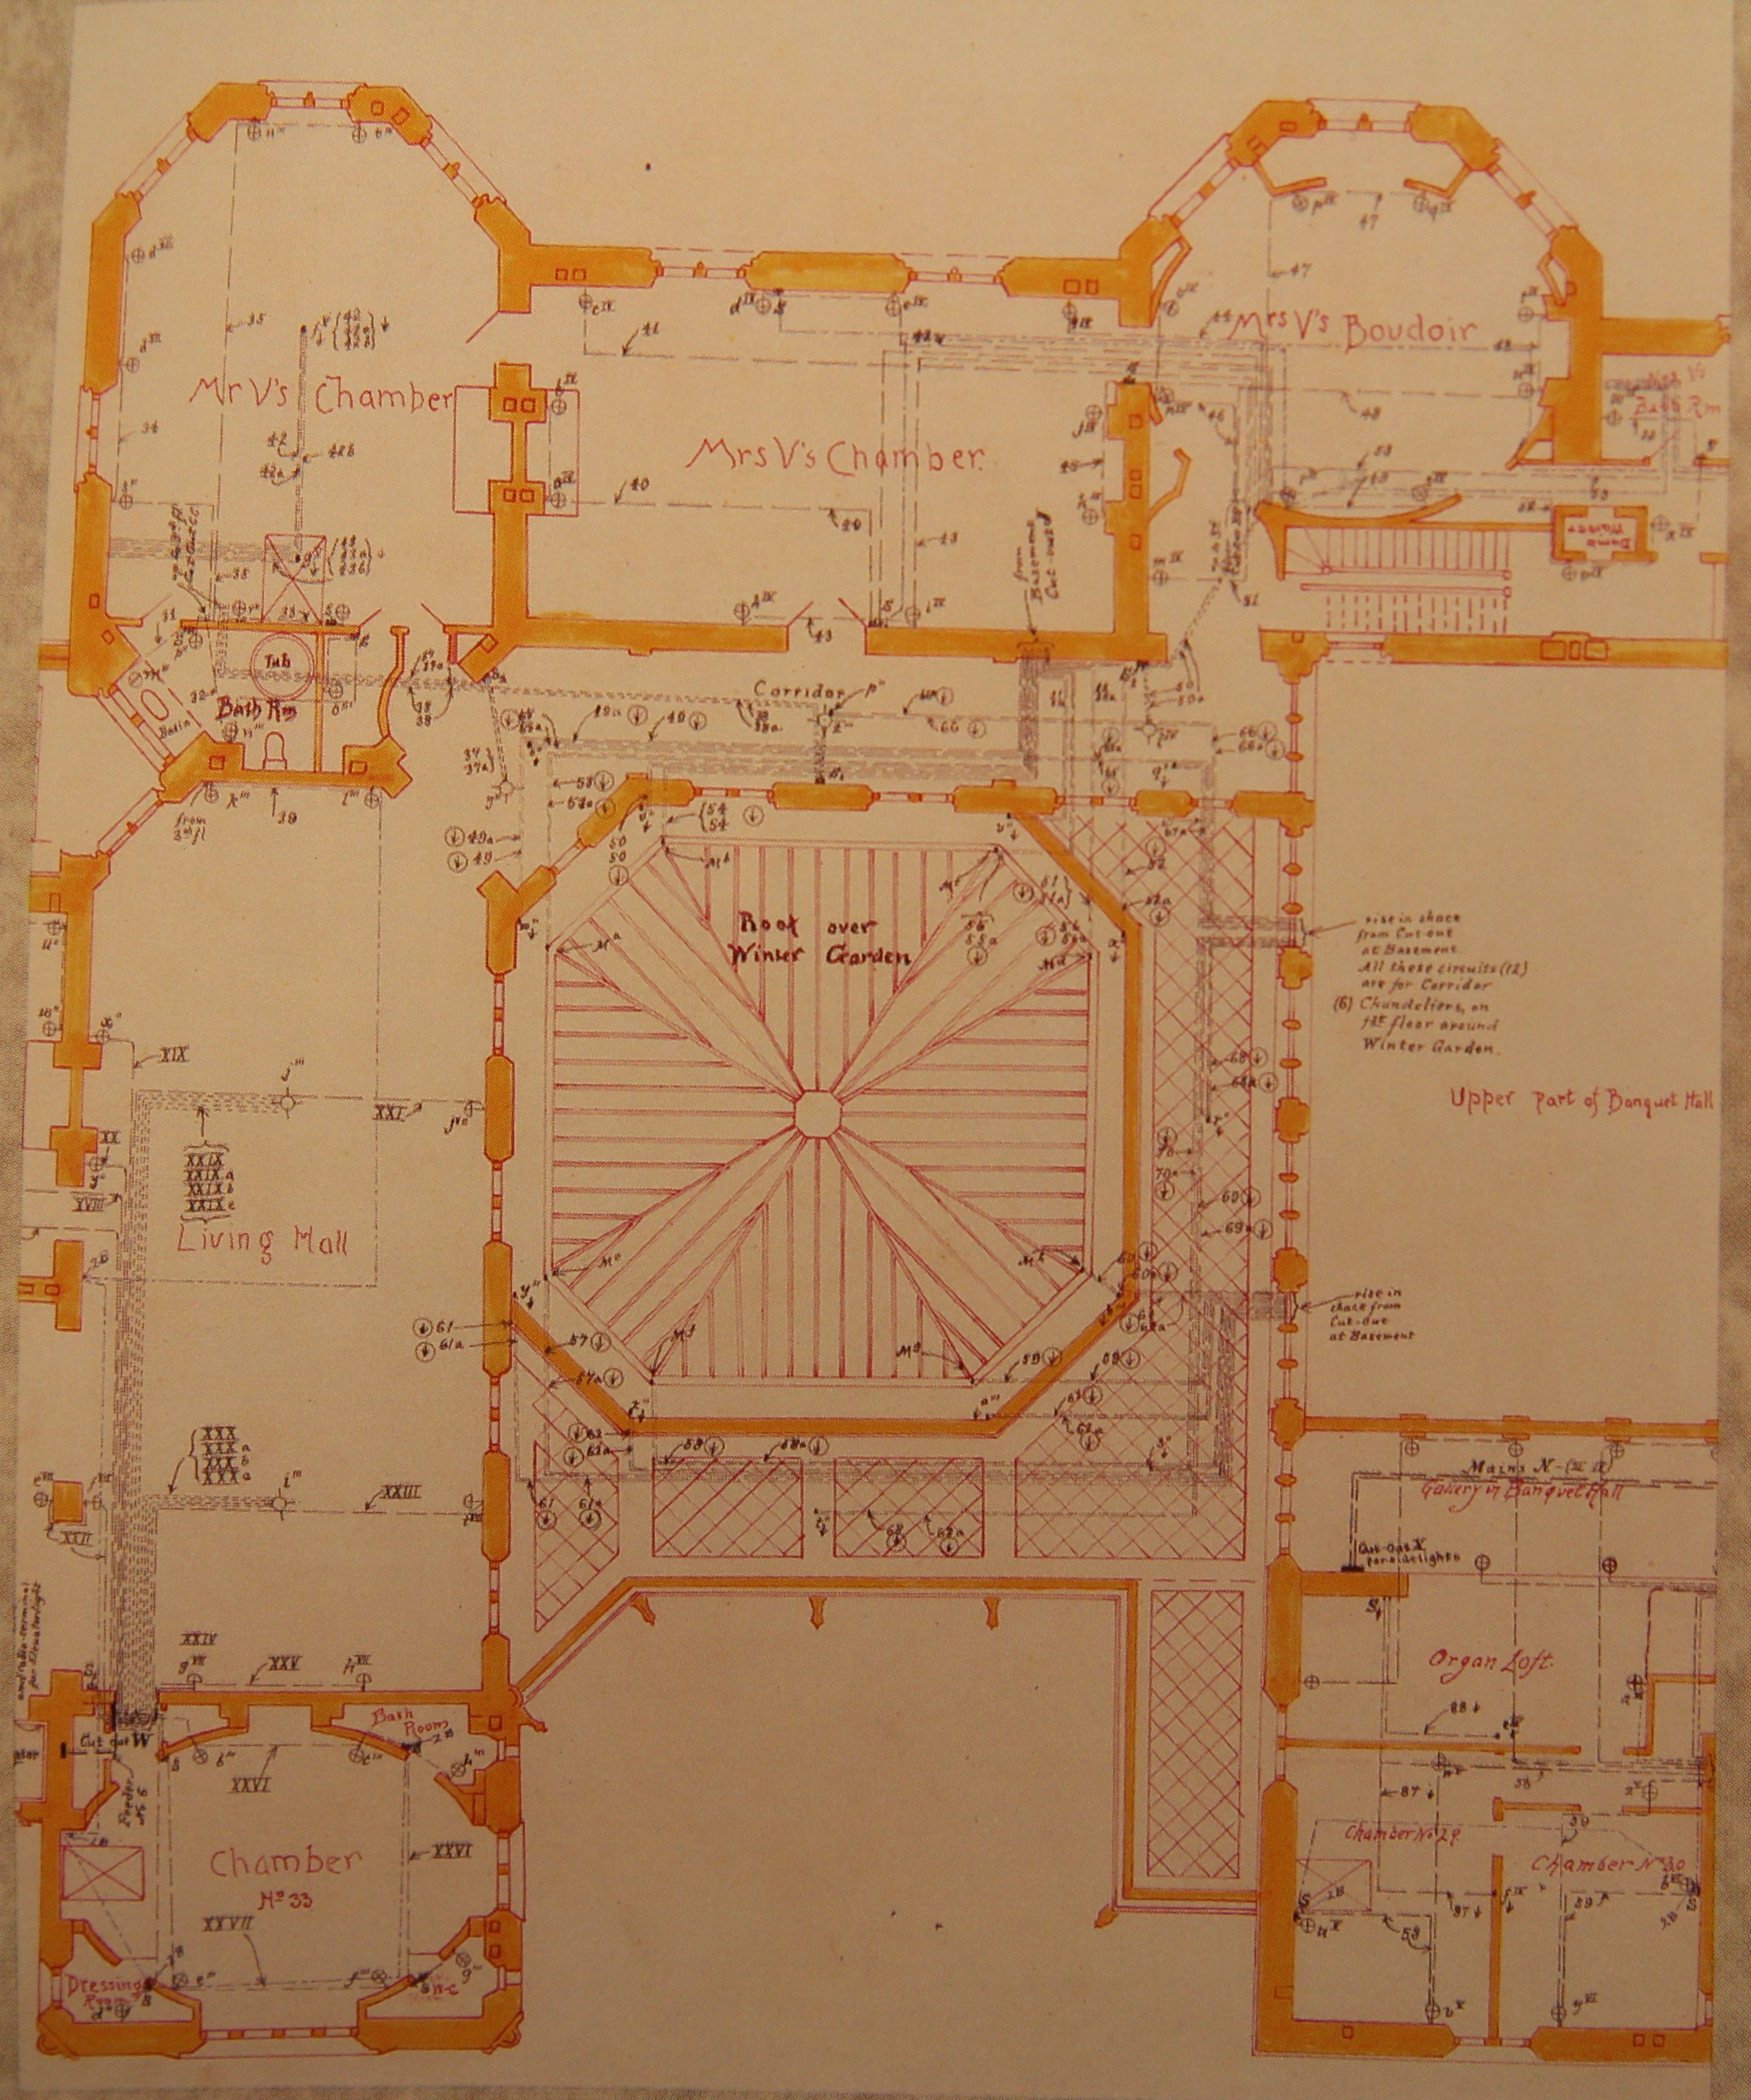 Electrical Plans For Part Of The Second Floor Of The Biltmore House Biltmore Biltmore Estate Asheville Biltmore House